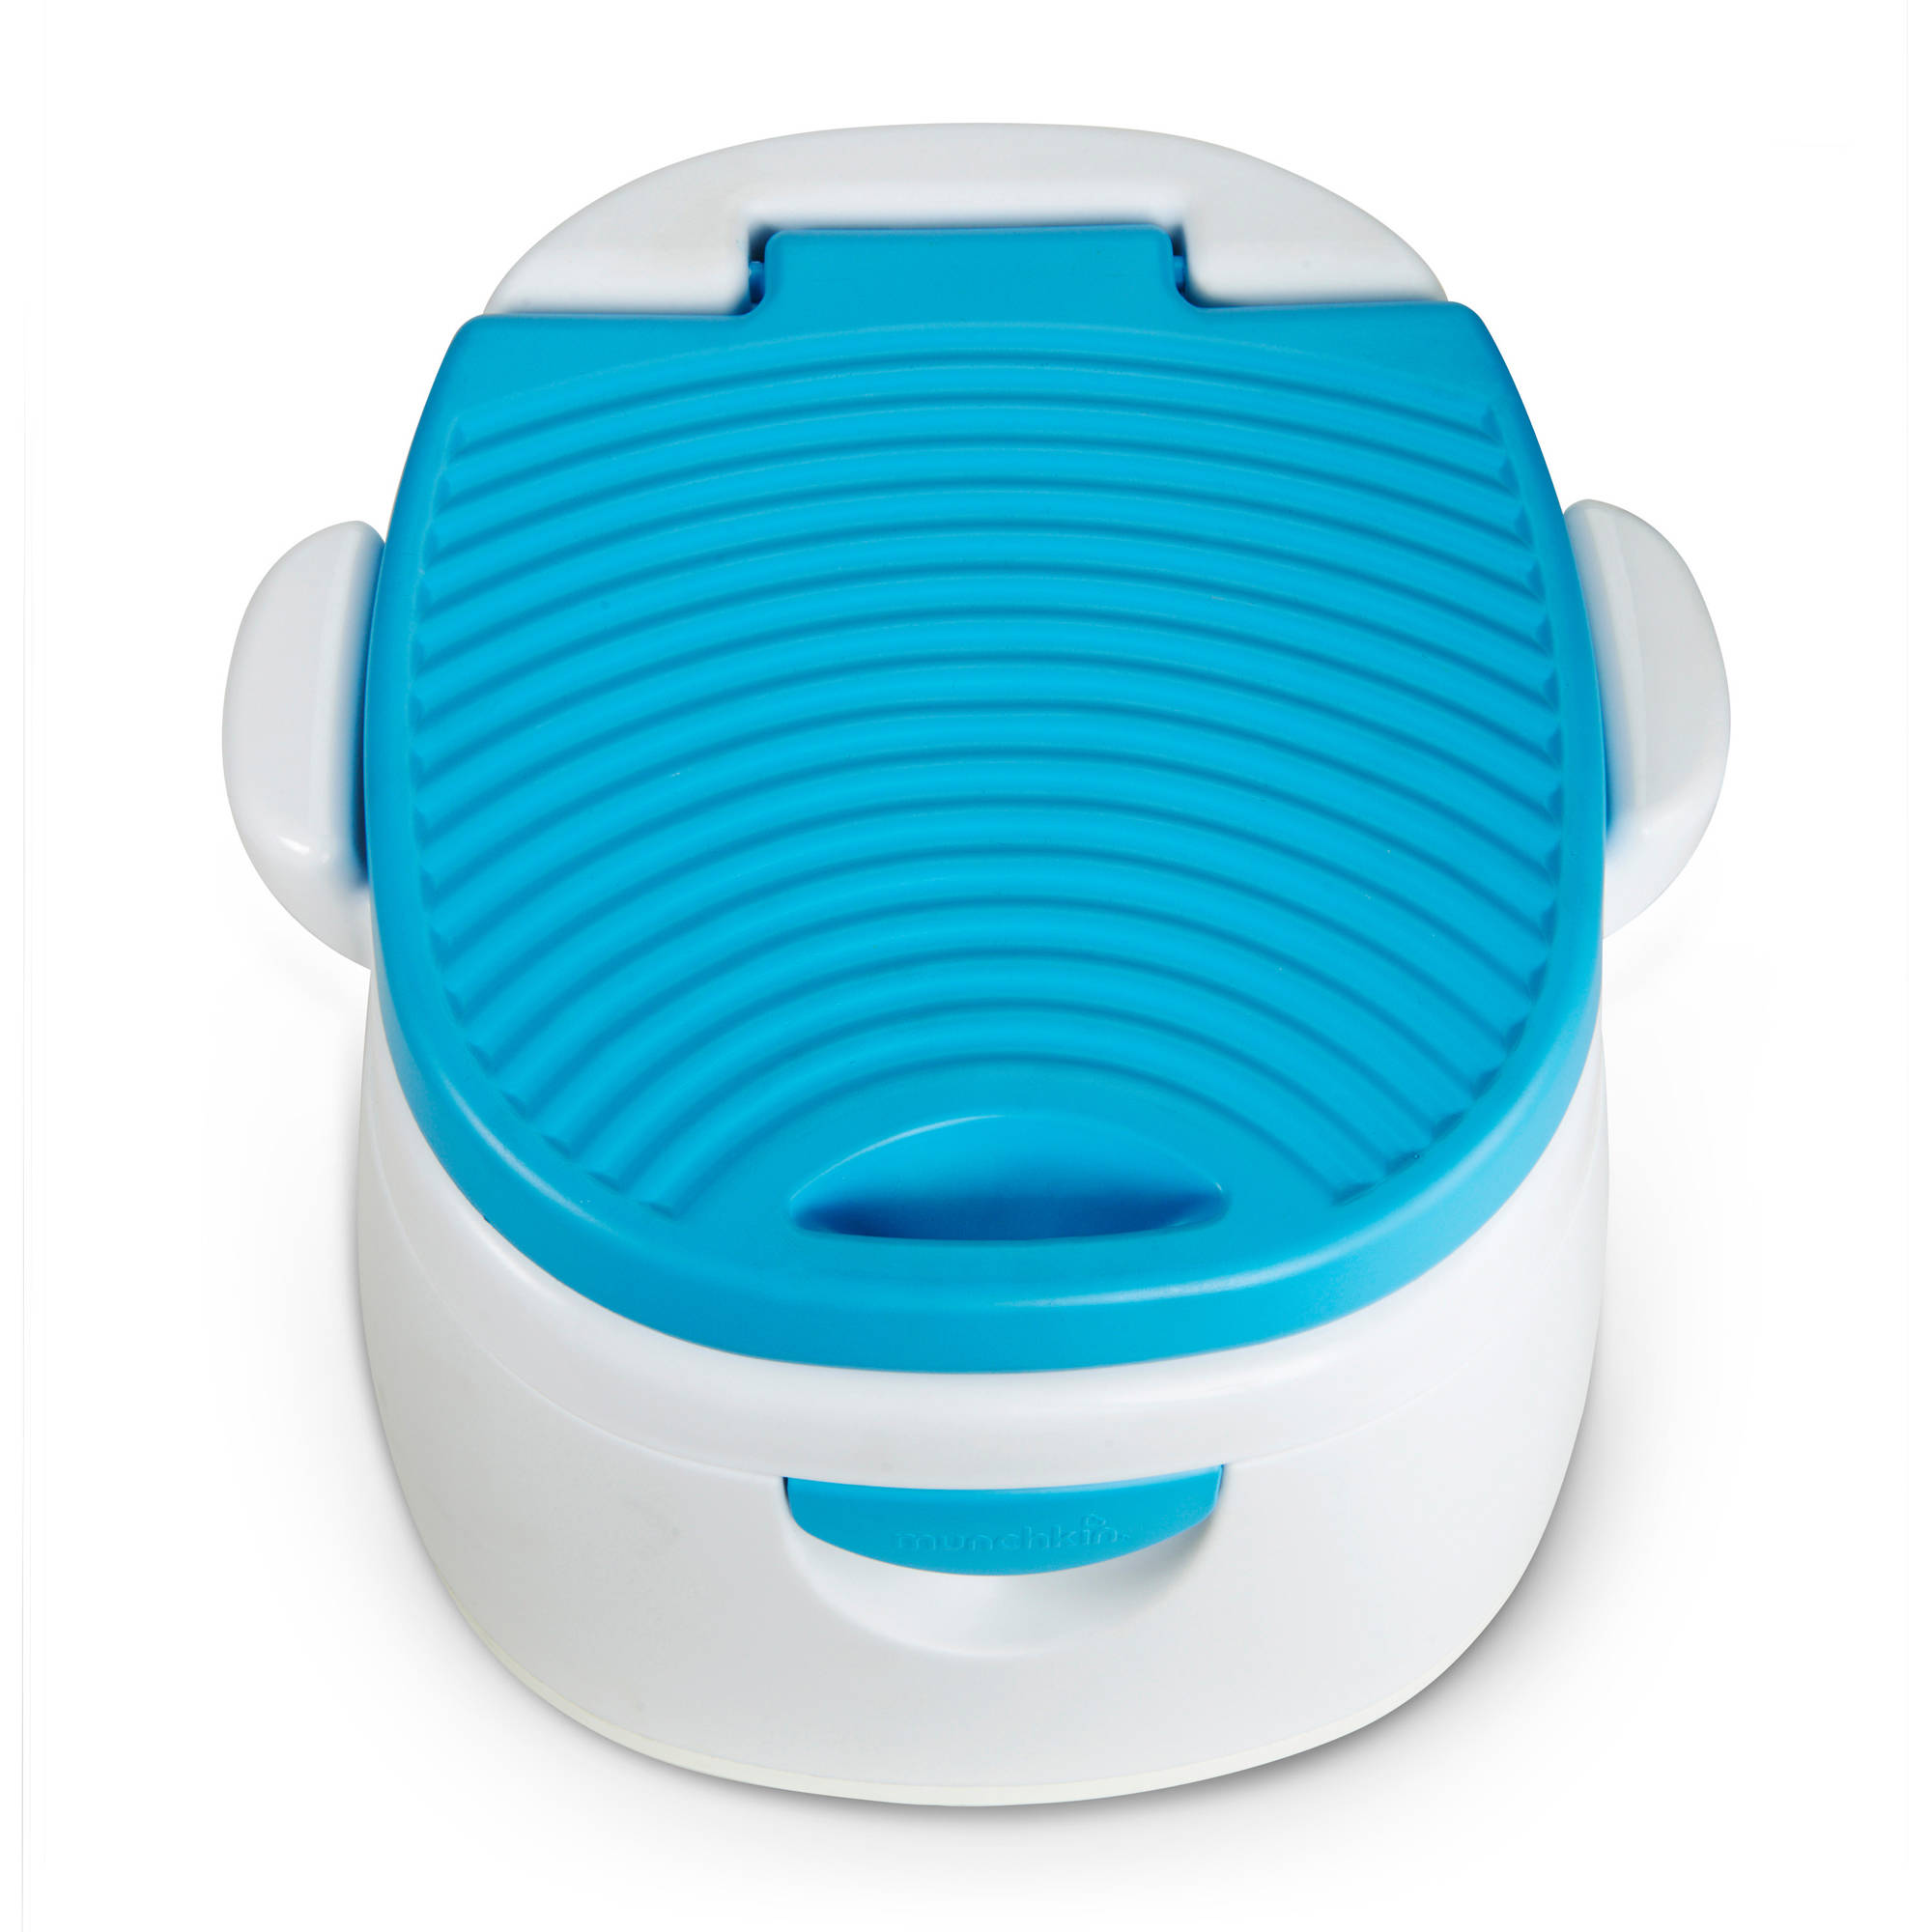 3 in 1 potty chair plastic covers for salon chairs munchkin hammer arm training seat bright bathroom